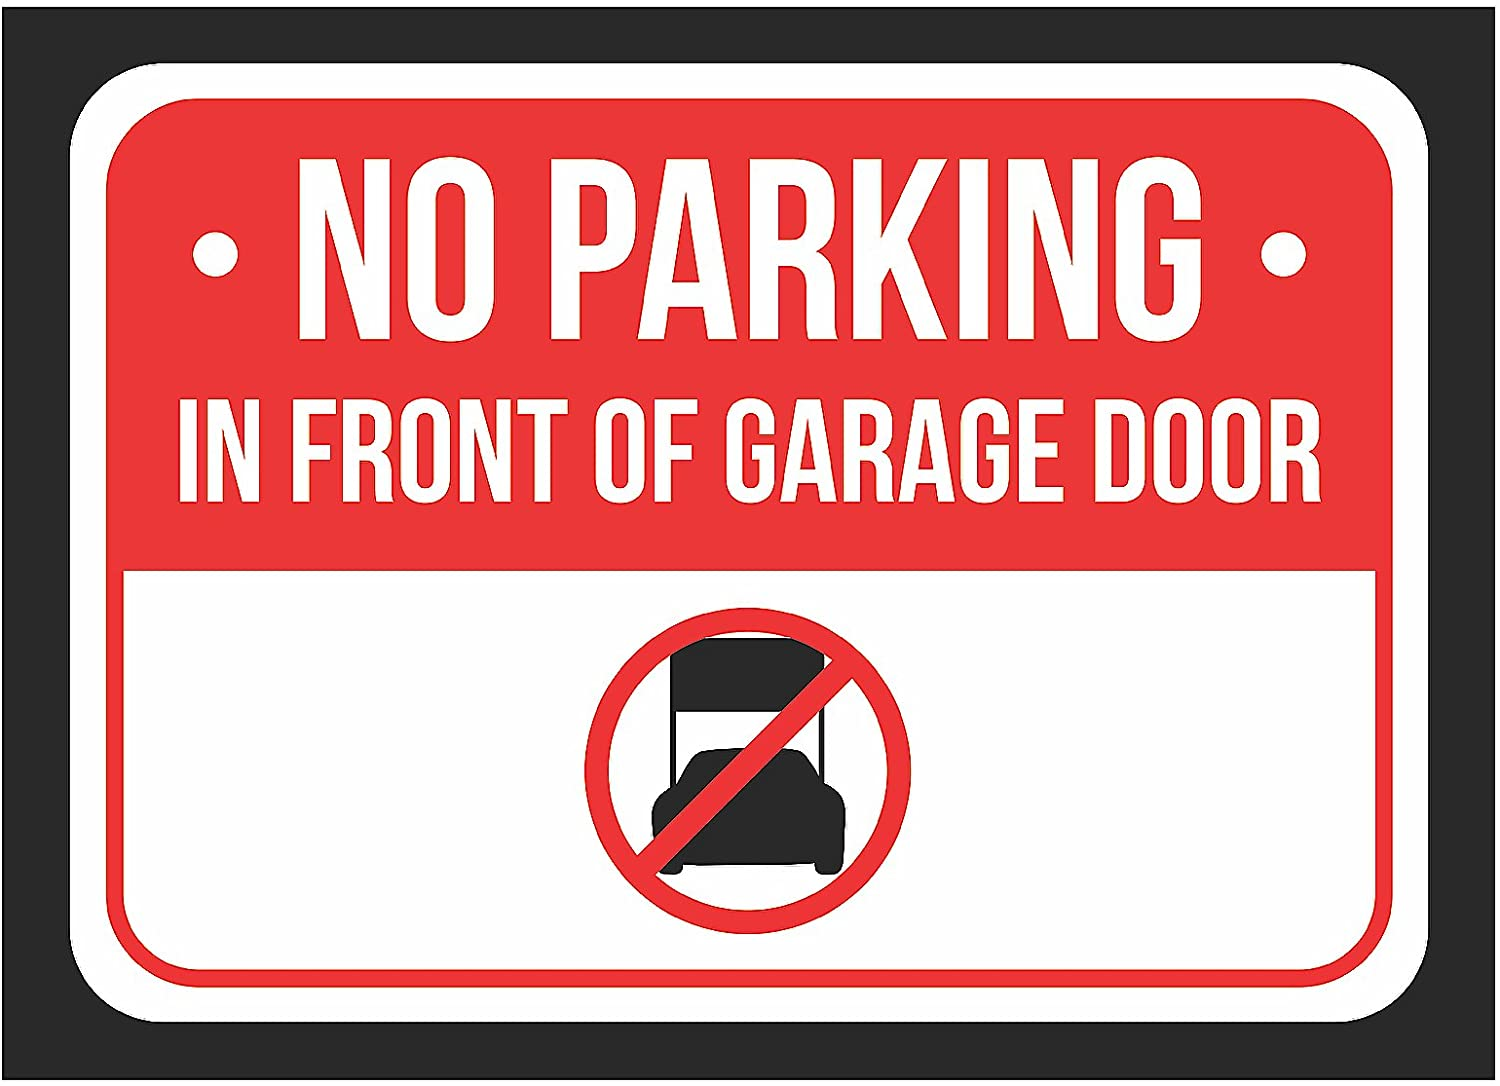 No Parking in Front of Garage Door Print Red Notice Parking Plastic Small Sign - 2 Pack of Signs, 7.5x10.5 Inch